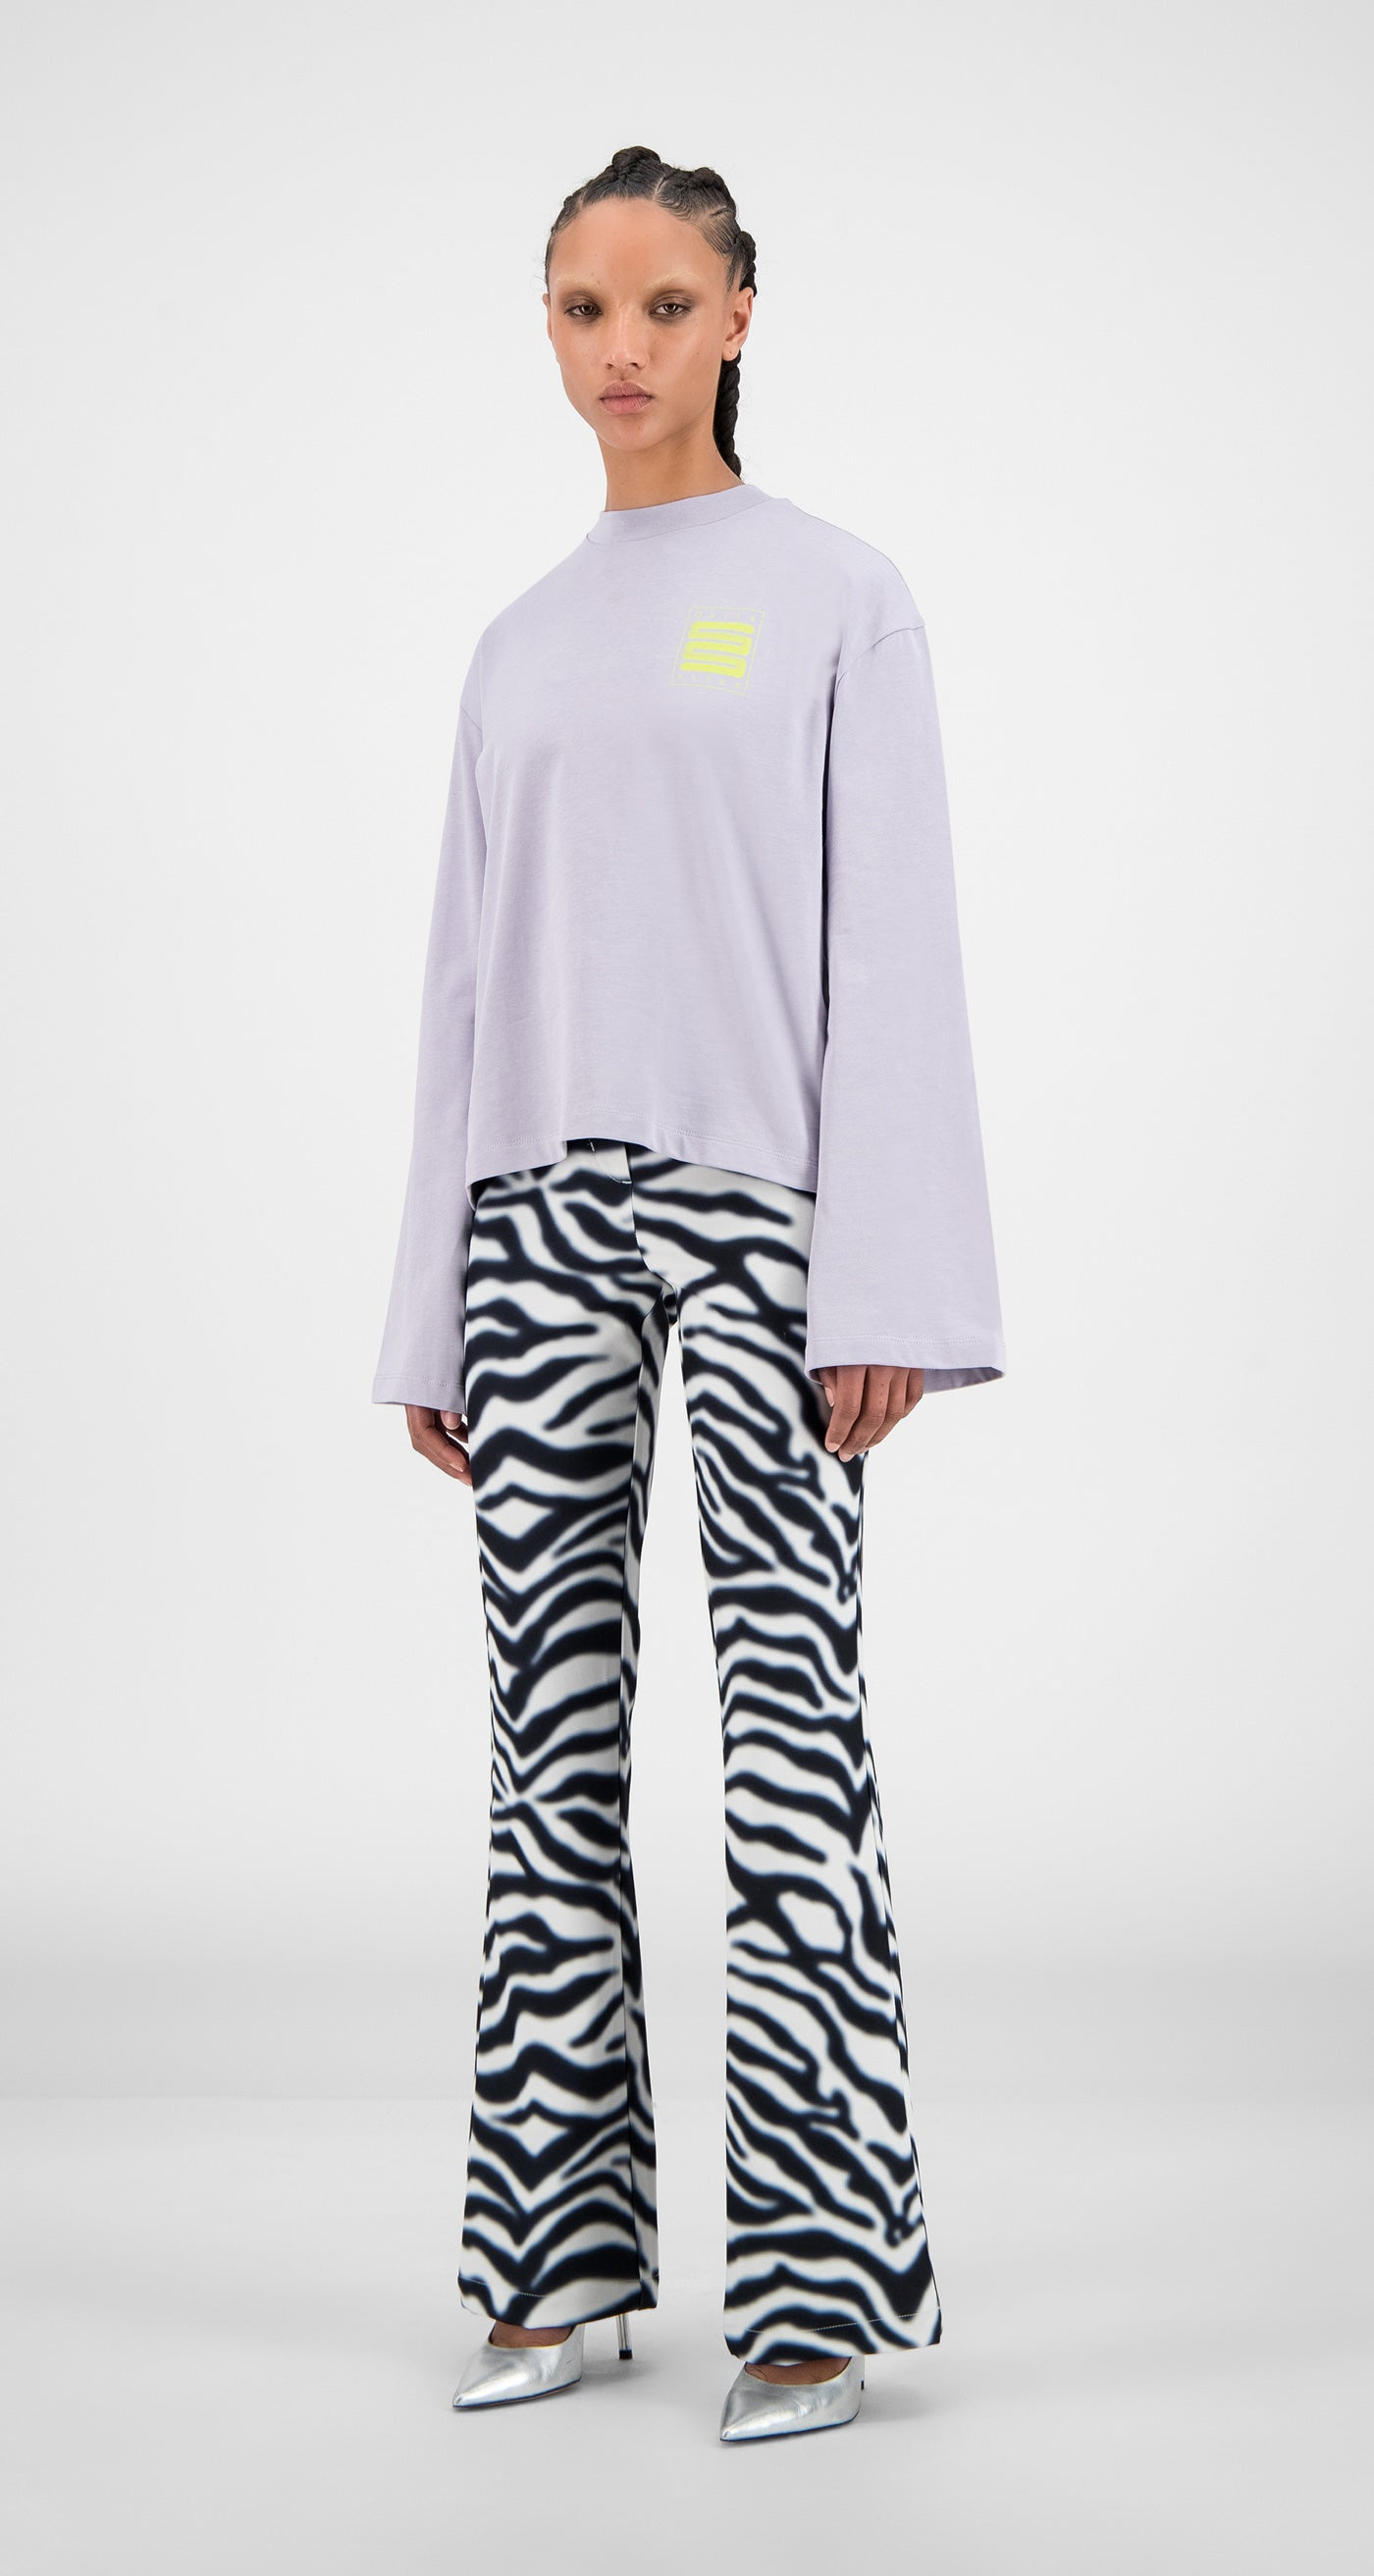 Daily Paper - Misty Lilac Hasmi Long Sleeve - Women